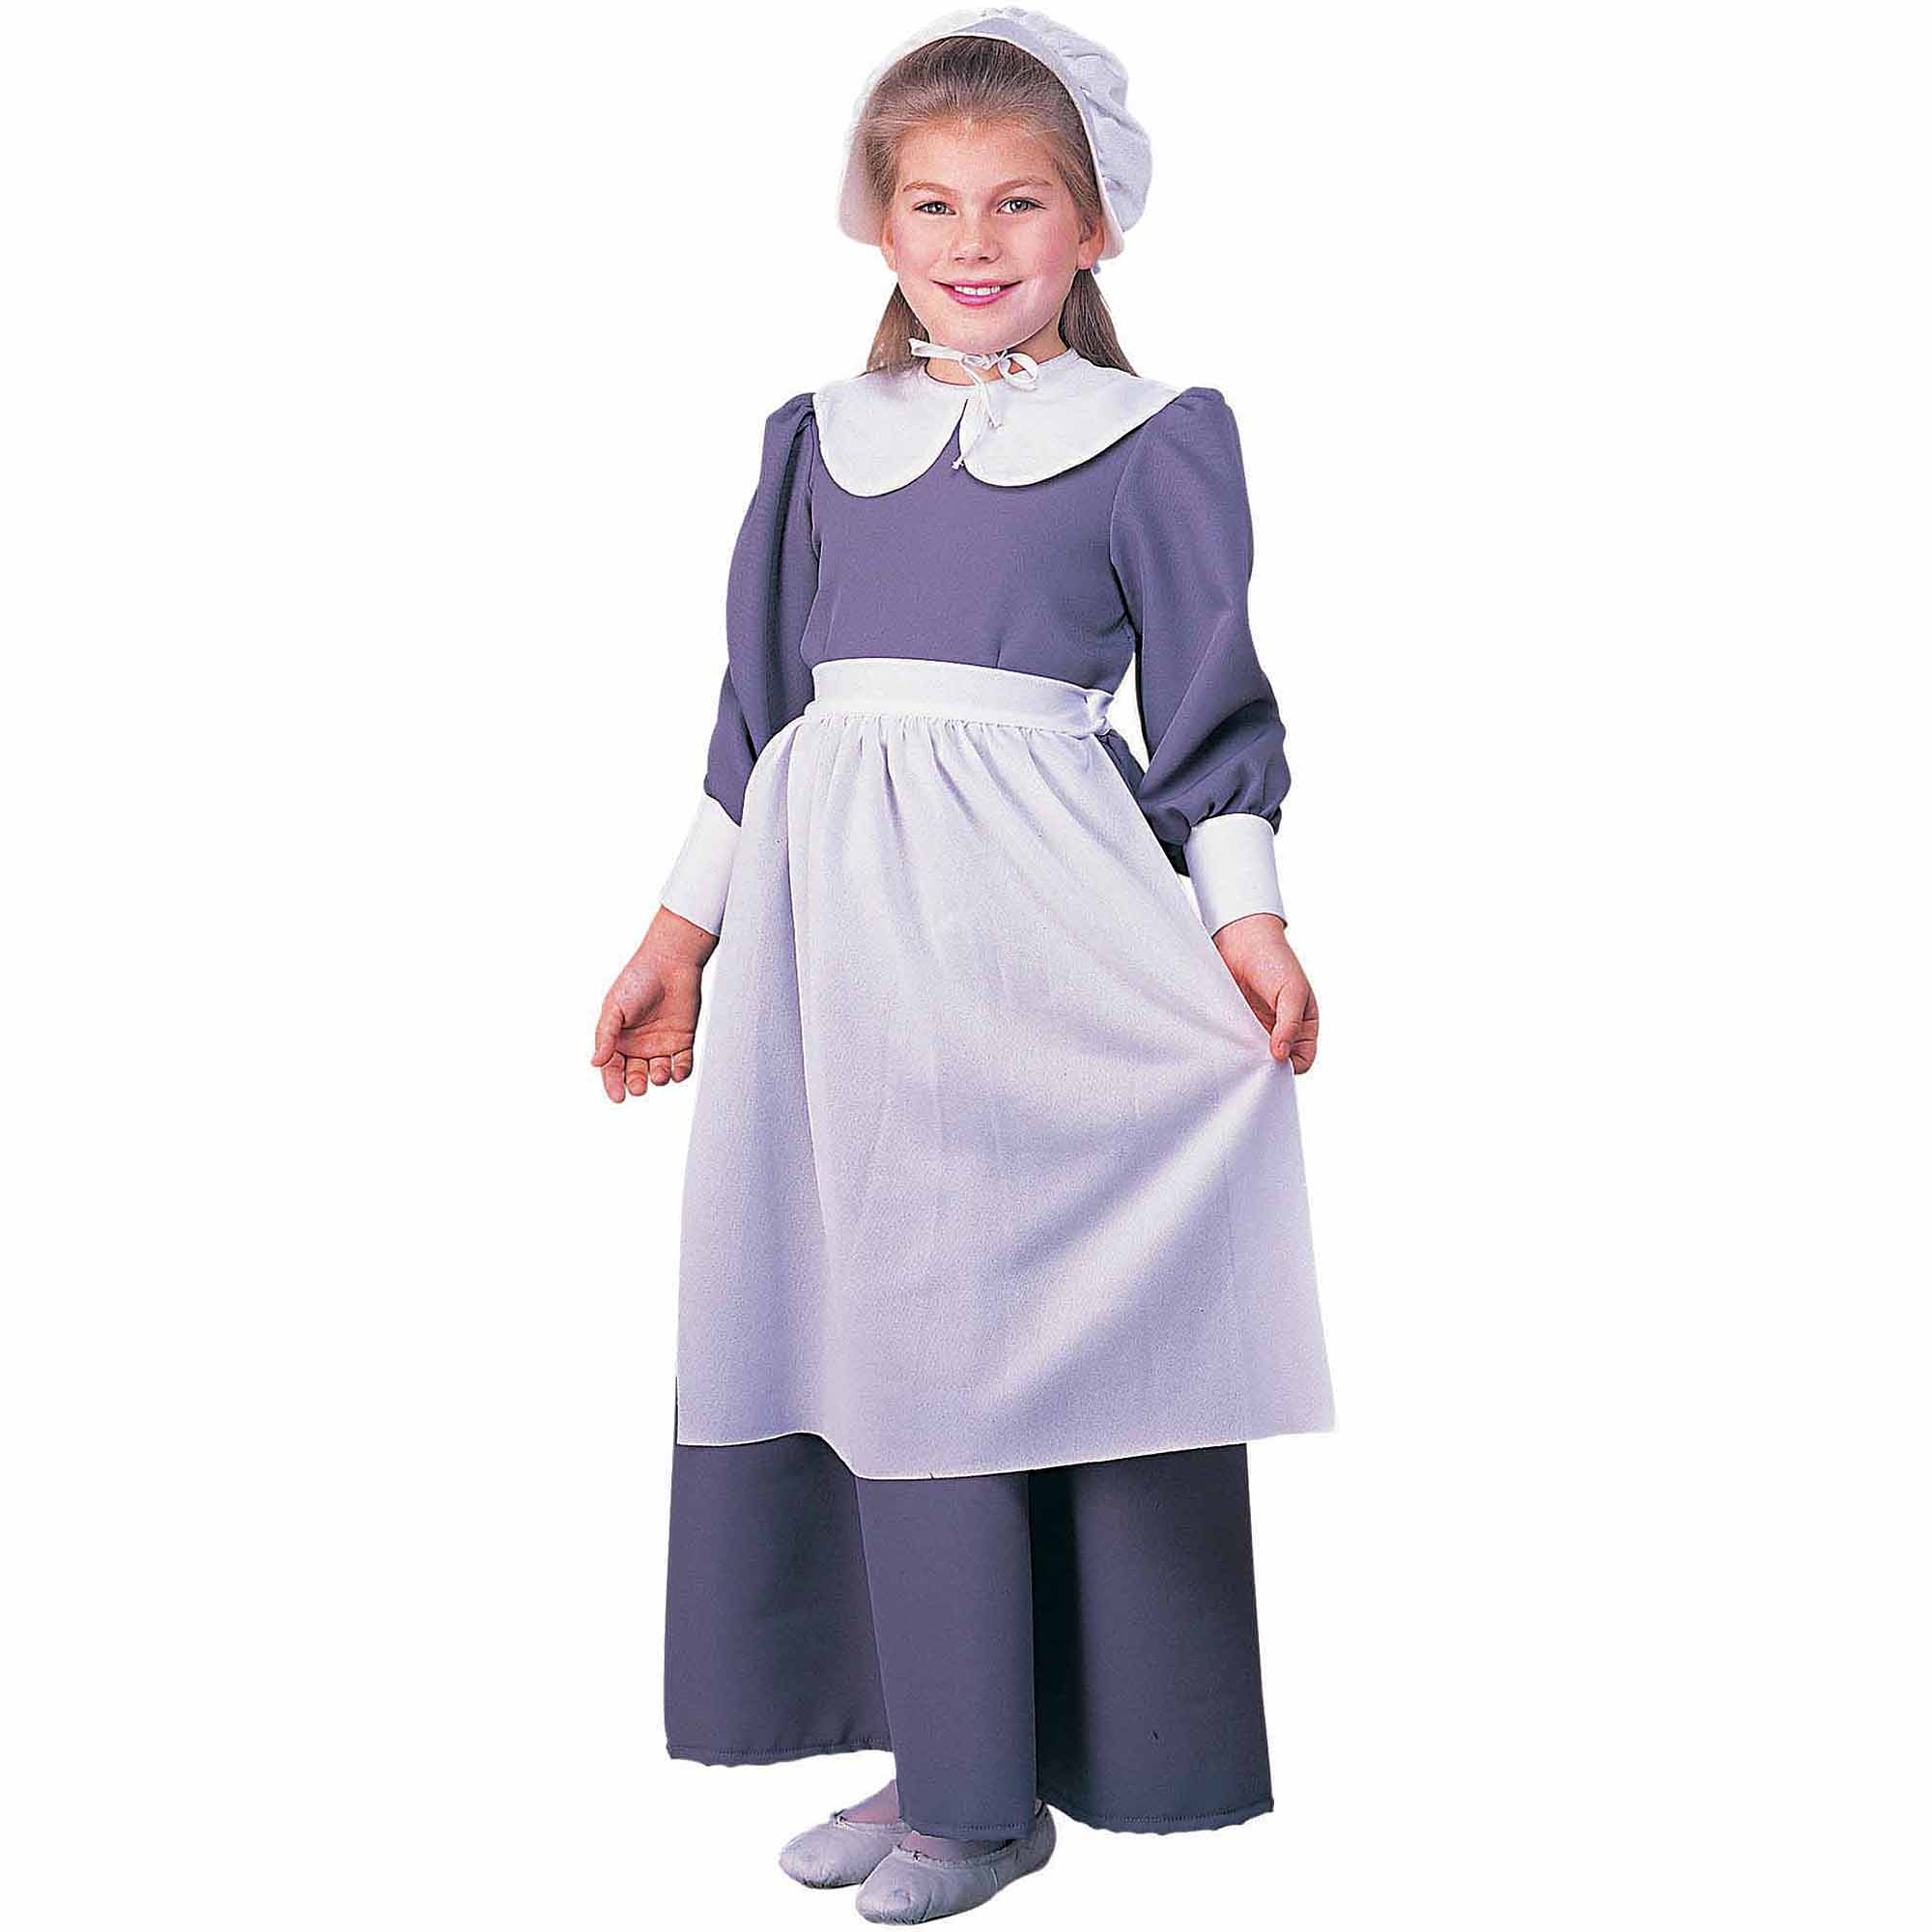 sc 1 st  Walmart & Pilgrim Girl Child Halloween Costume - Walmart.com